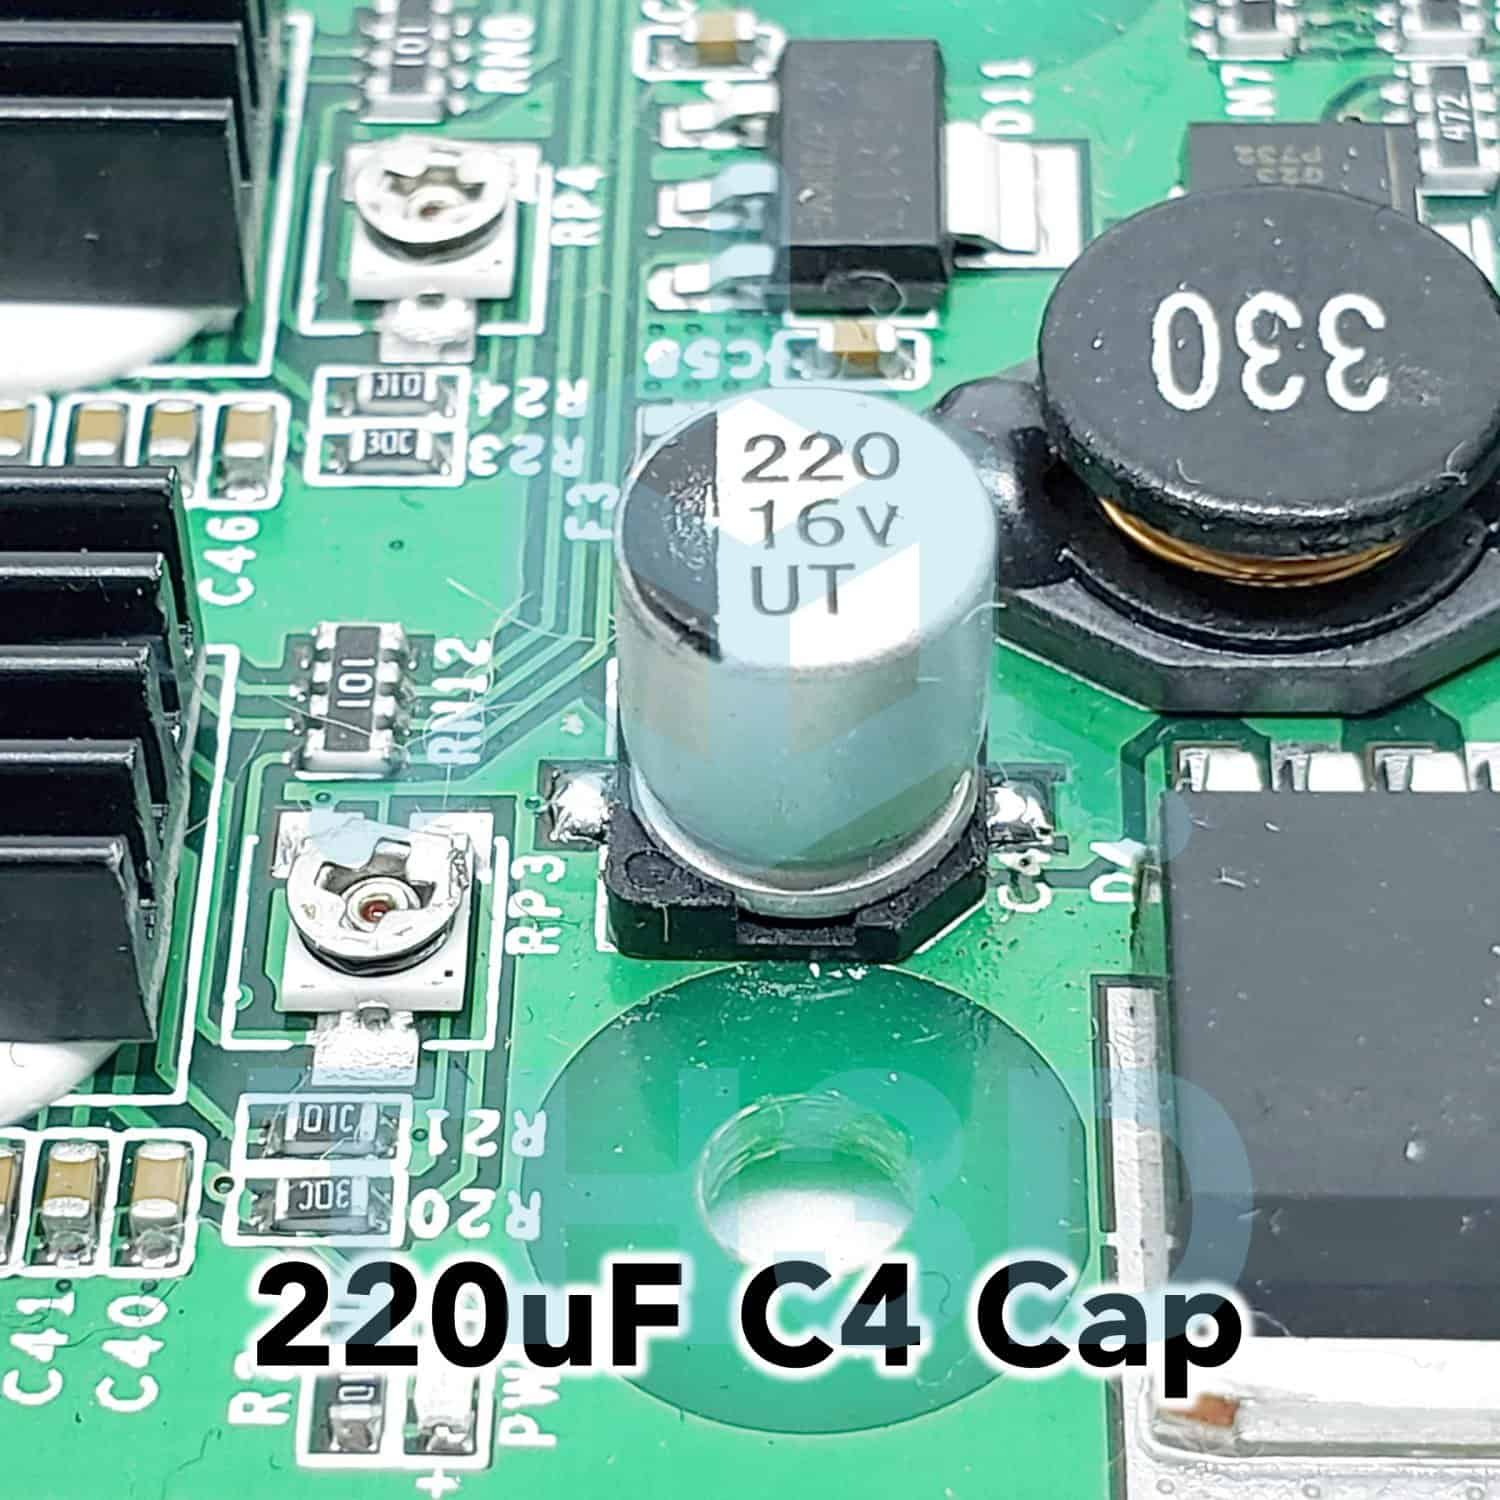 Creality Dual Extruder Upgrade Board 2nd E Motor Cable Included Gstudio Group Circuit Boards Design Motherboard Dreamstime Pcb